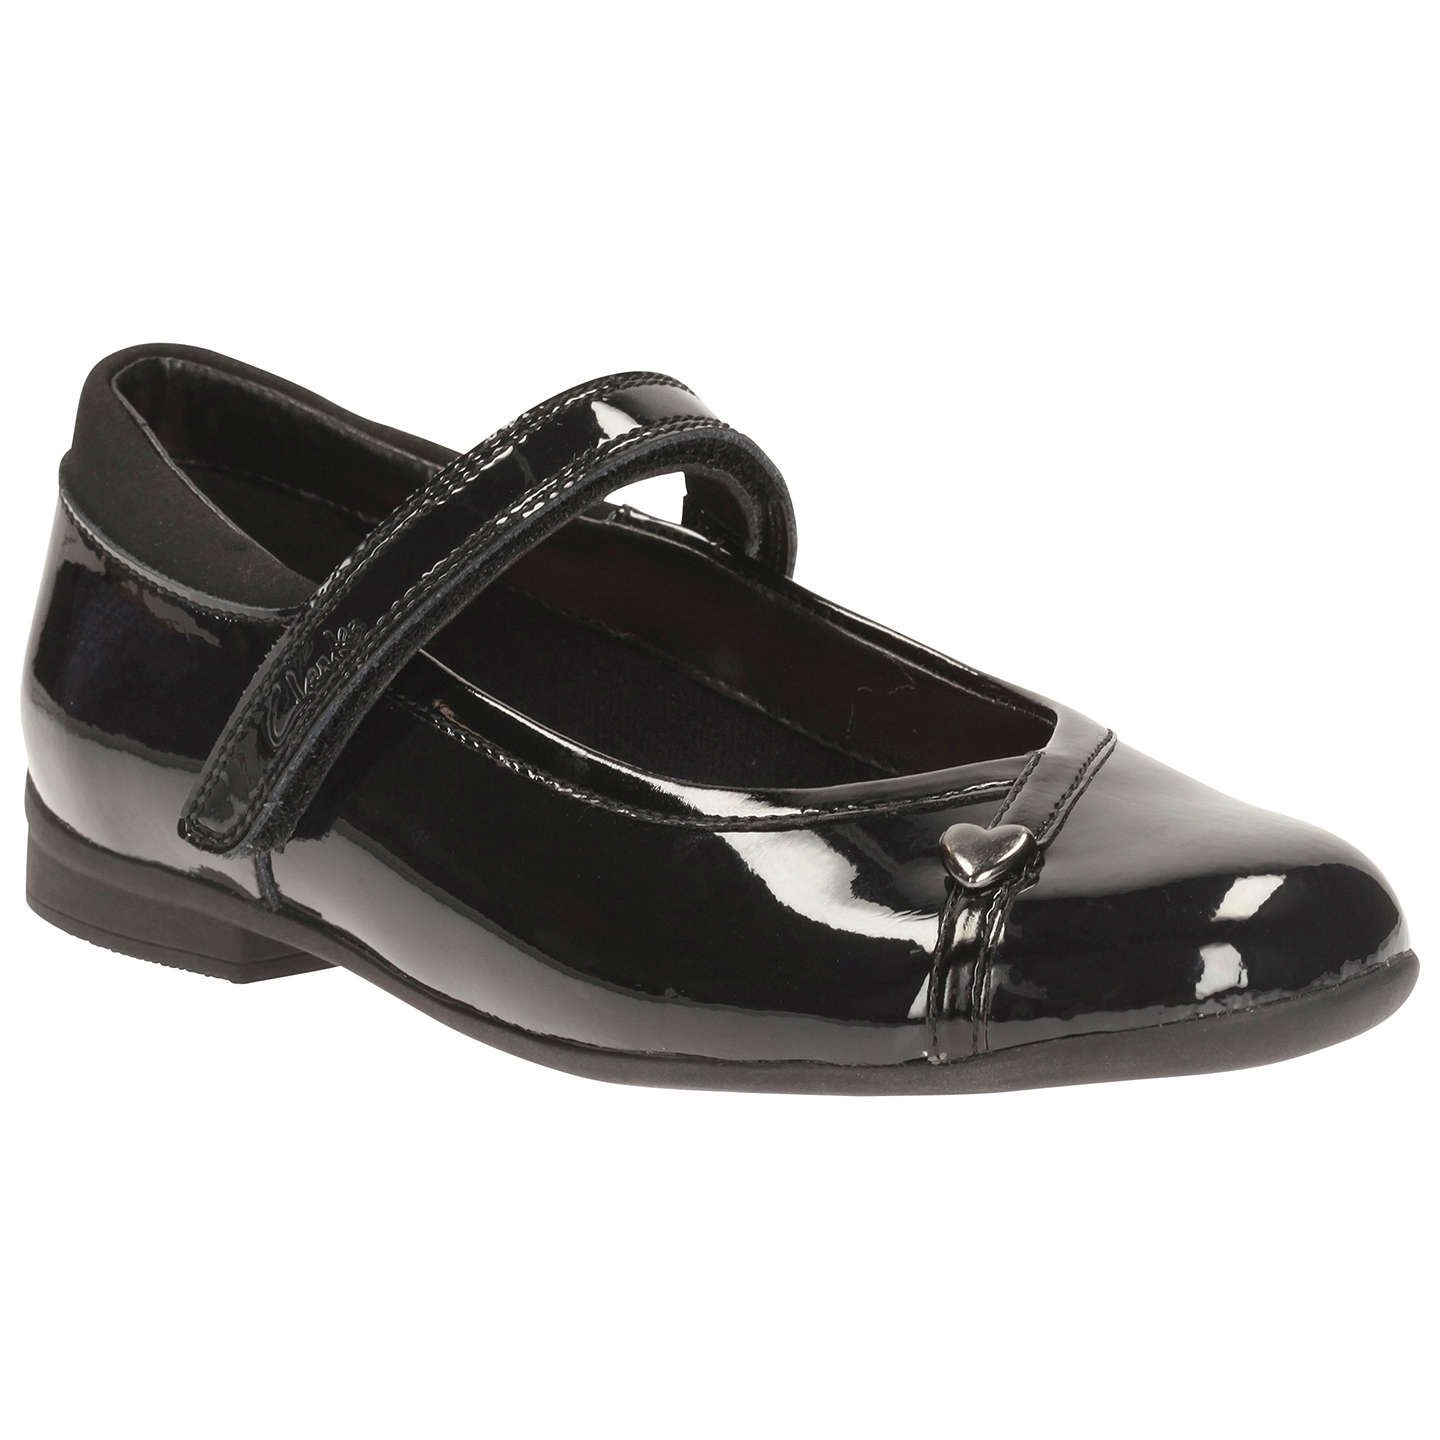 BuyClarks Children's Mary Jane School Shoes, Black, 10E Jnr Online at johnlewis.com